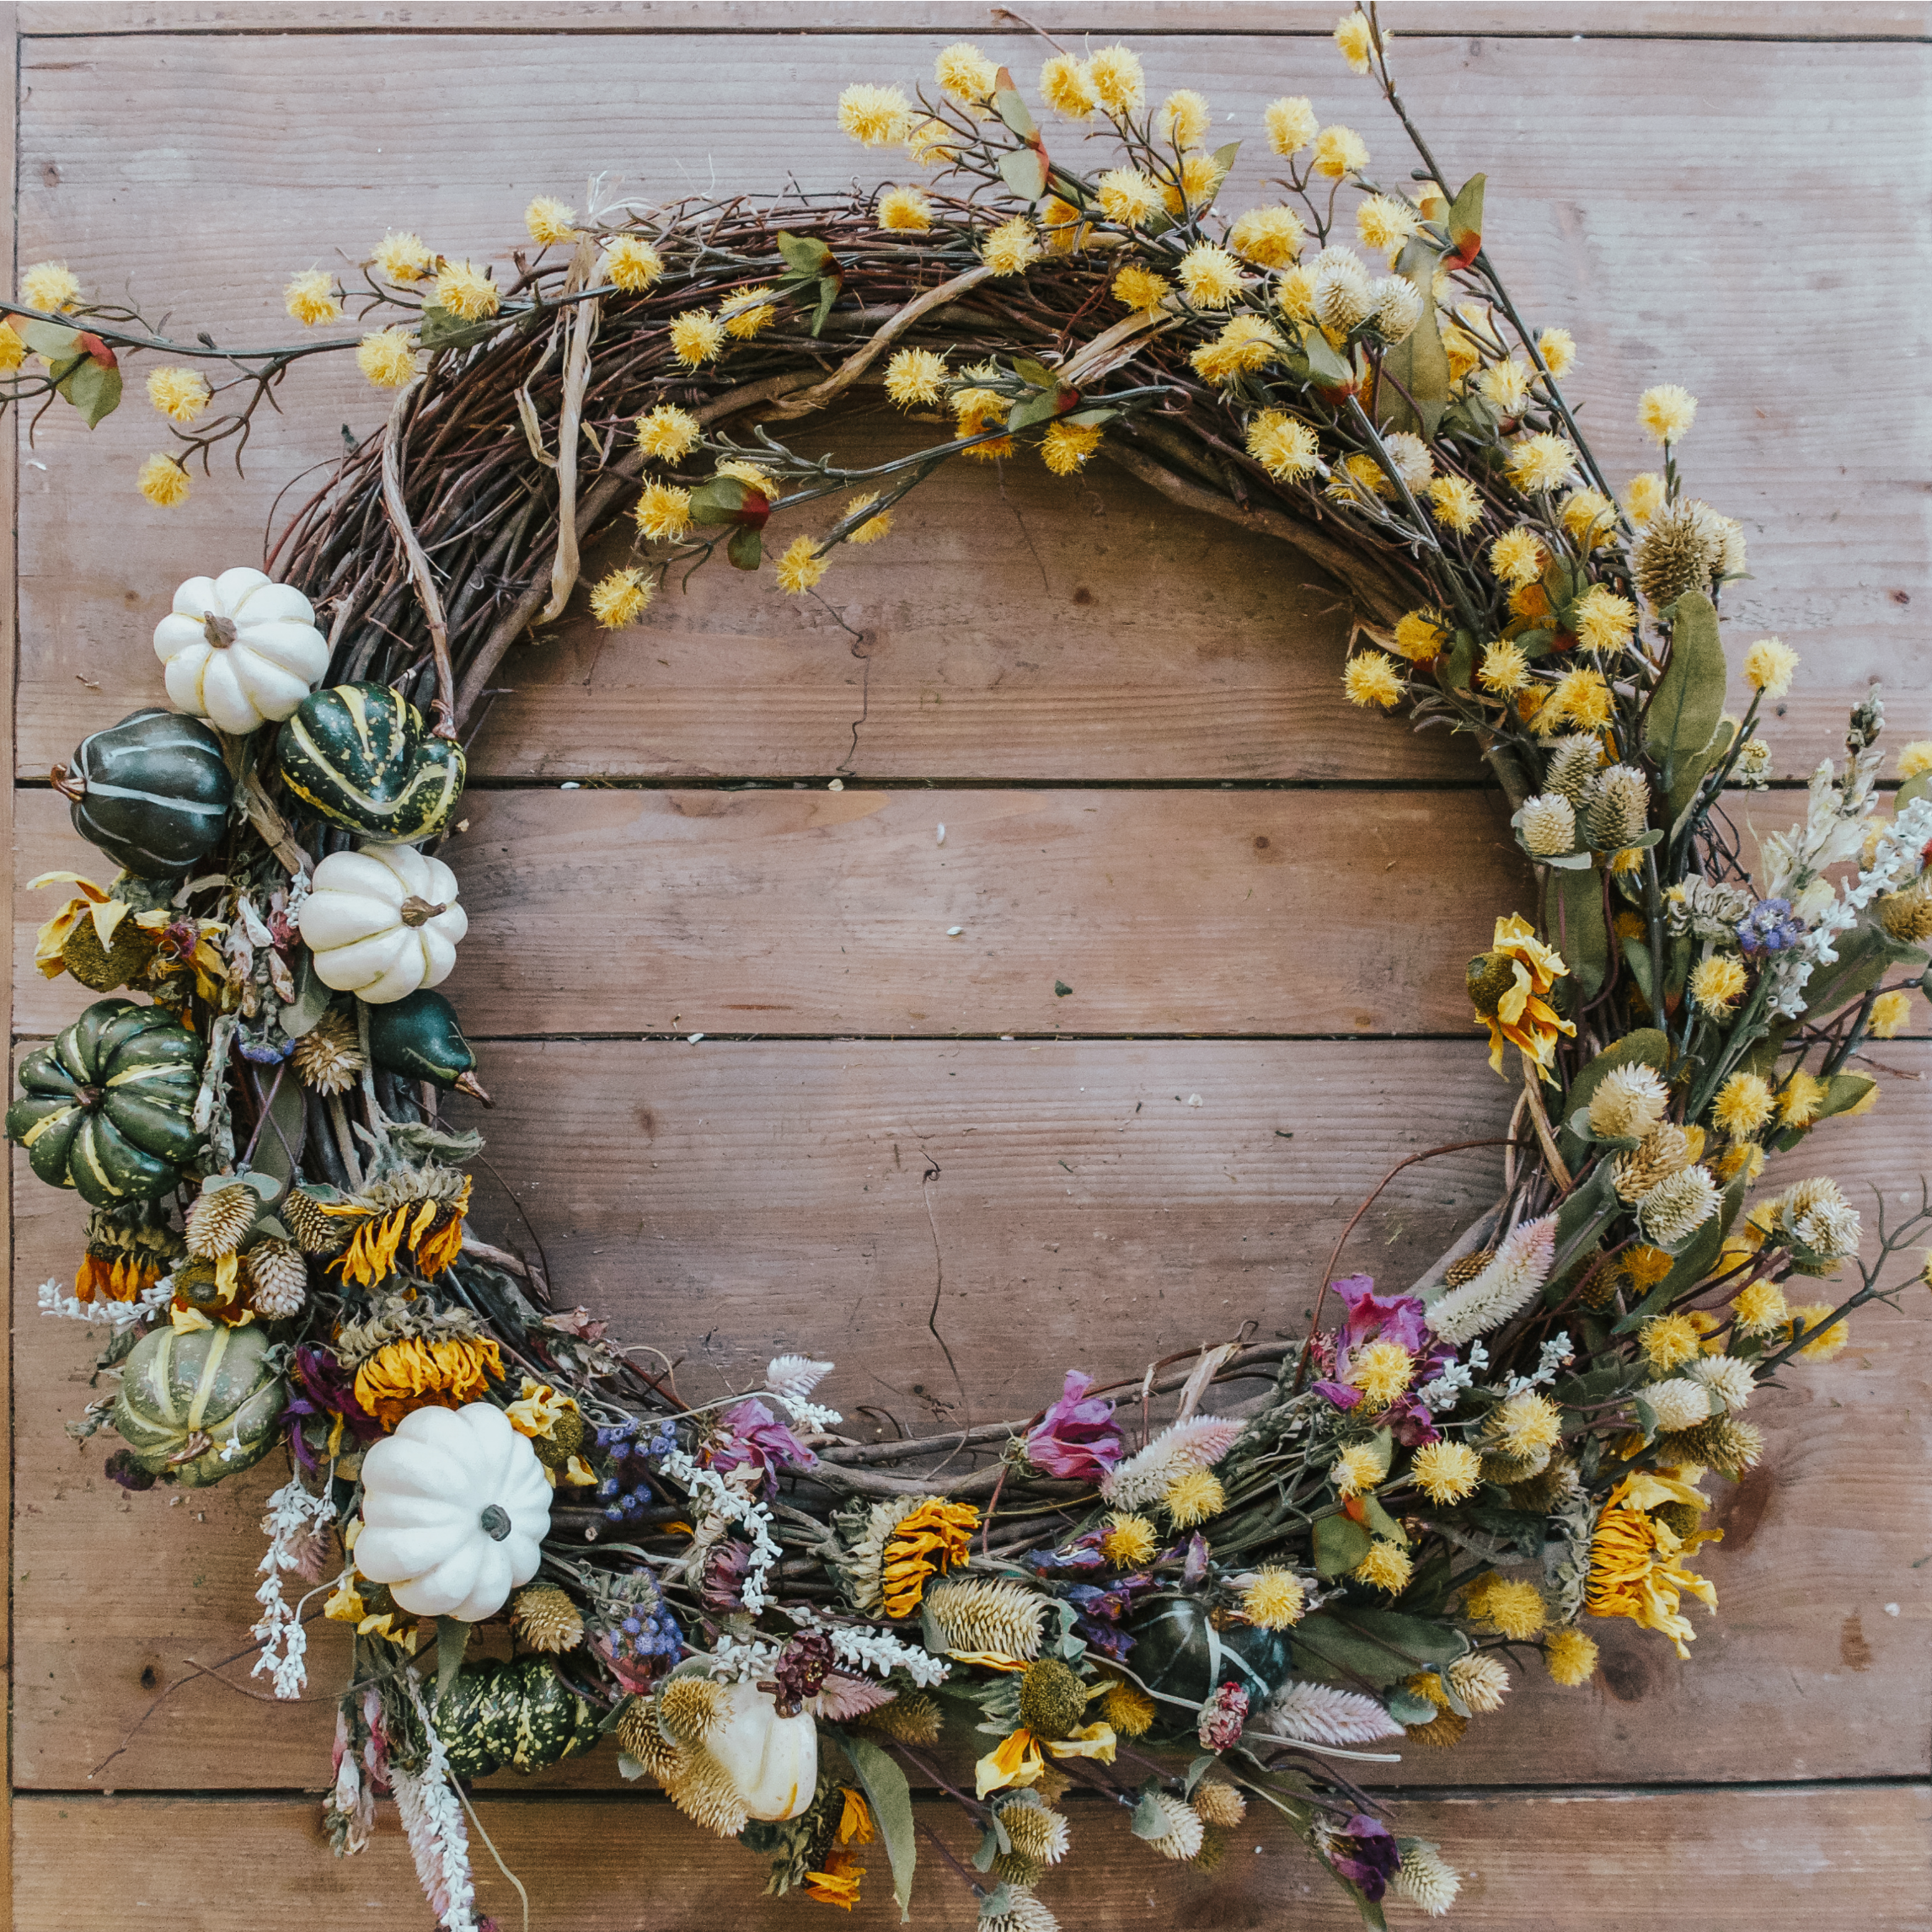 How To Make A Dried Floral Fall Wreath Zoe With Love